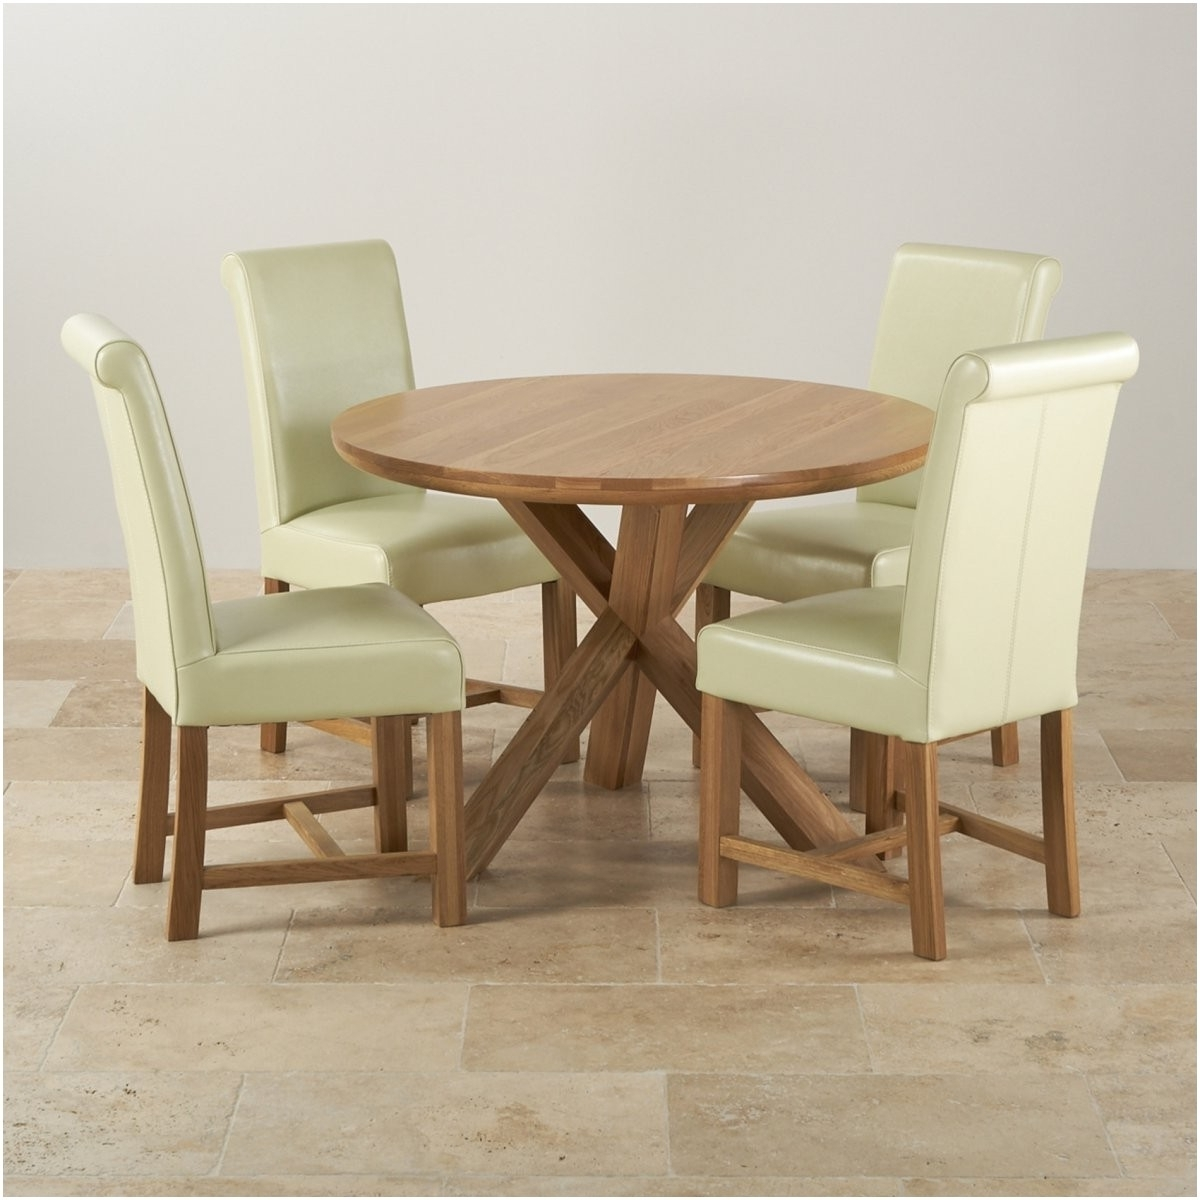 Ericamchristensen In Round Oak Dining Tables And 4 Chairs (View 6 of 25)